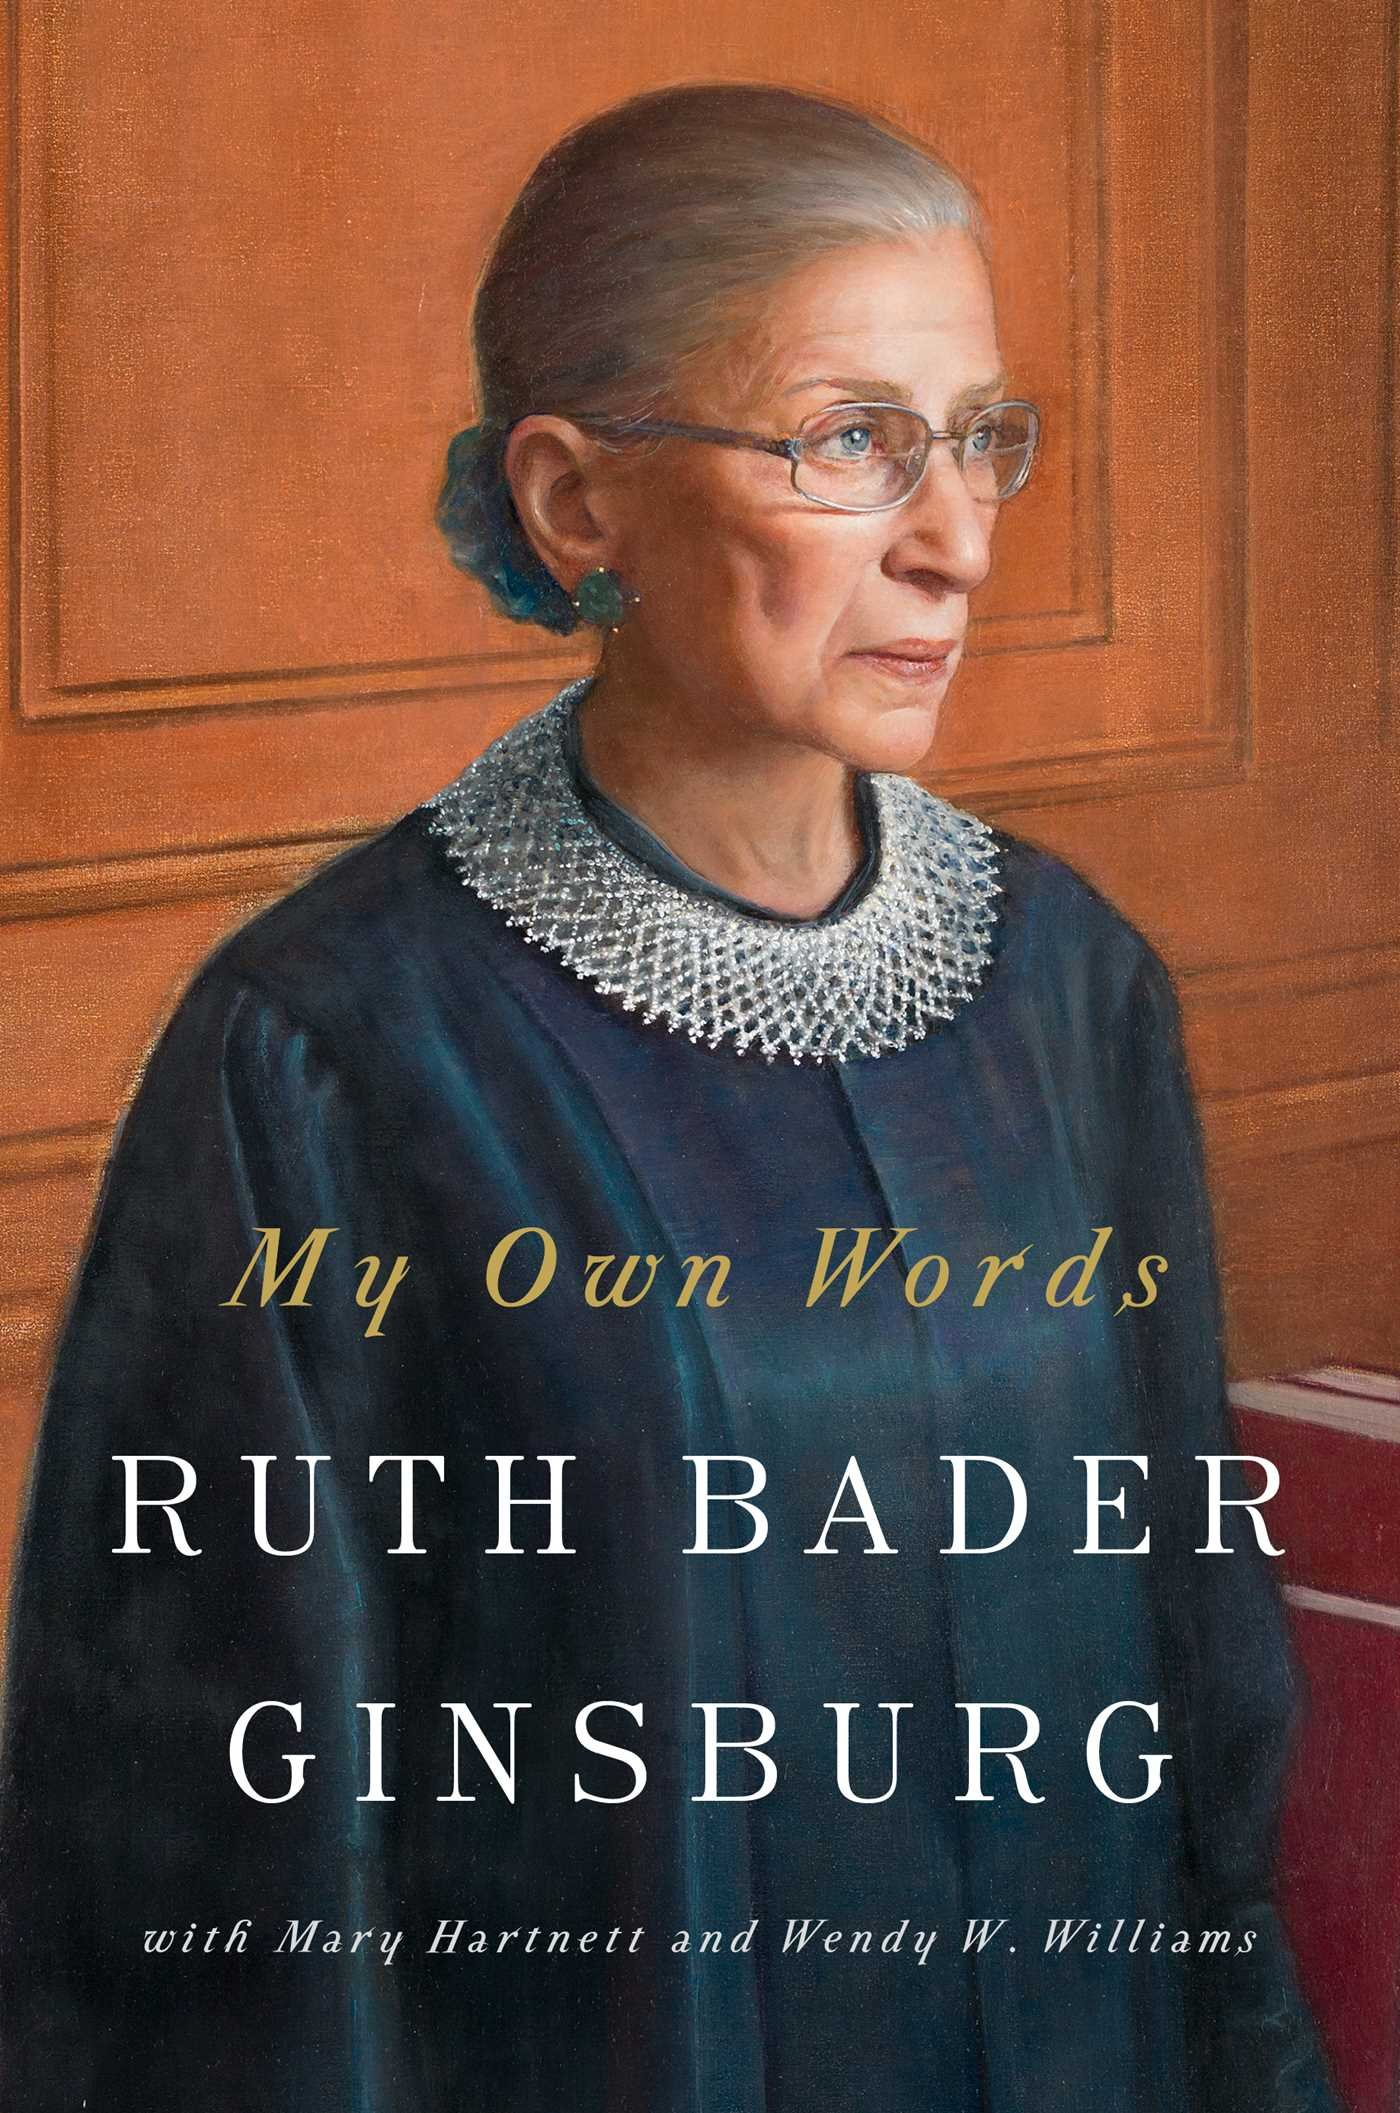 My Own Words by Ruth Bader Ginsburg with Mary Hartnett, Wendy W. Williams